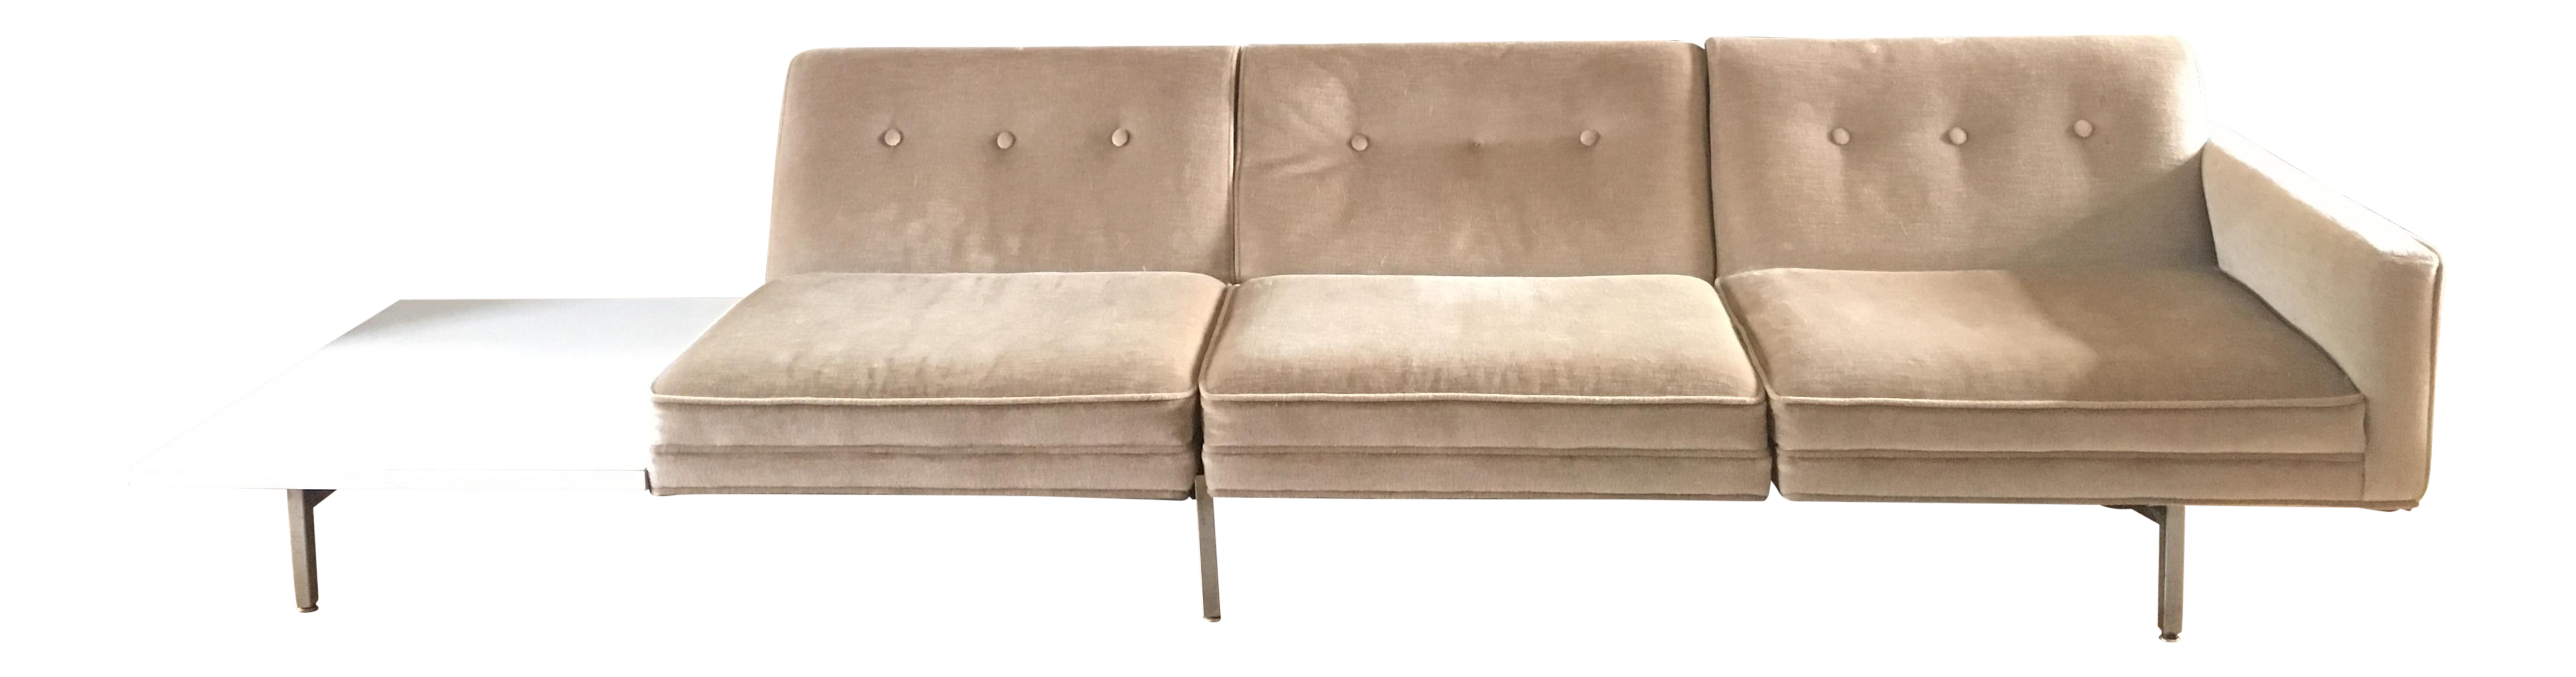 George Nelson For Herman Miller Modular Three Seat Sofa